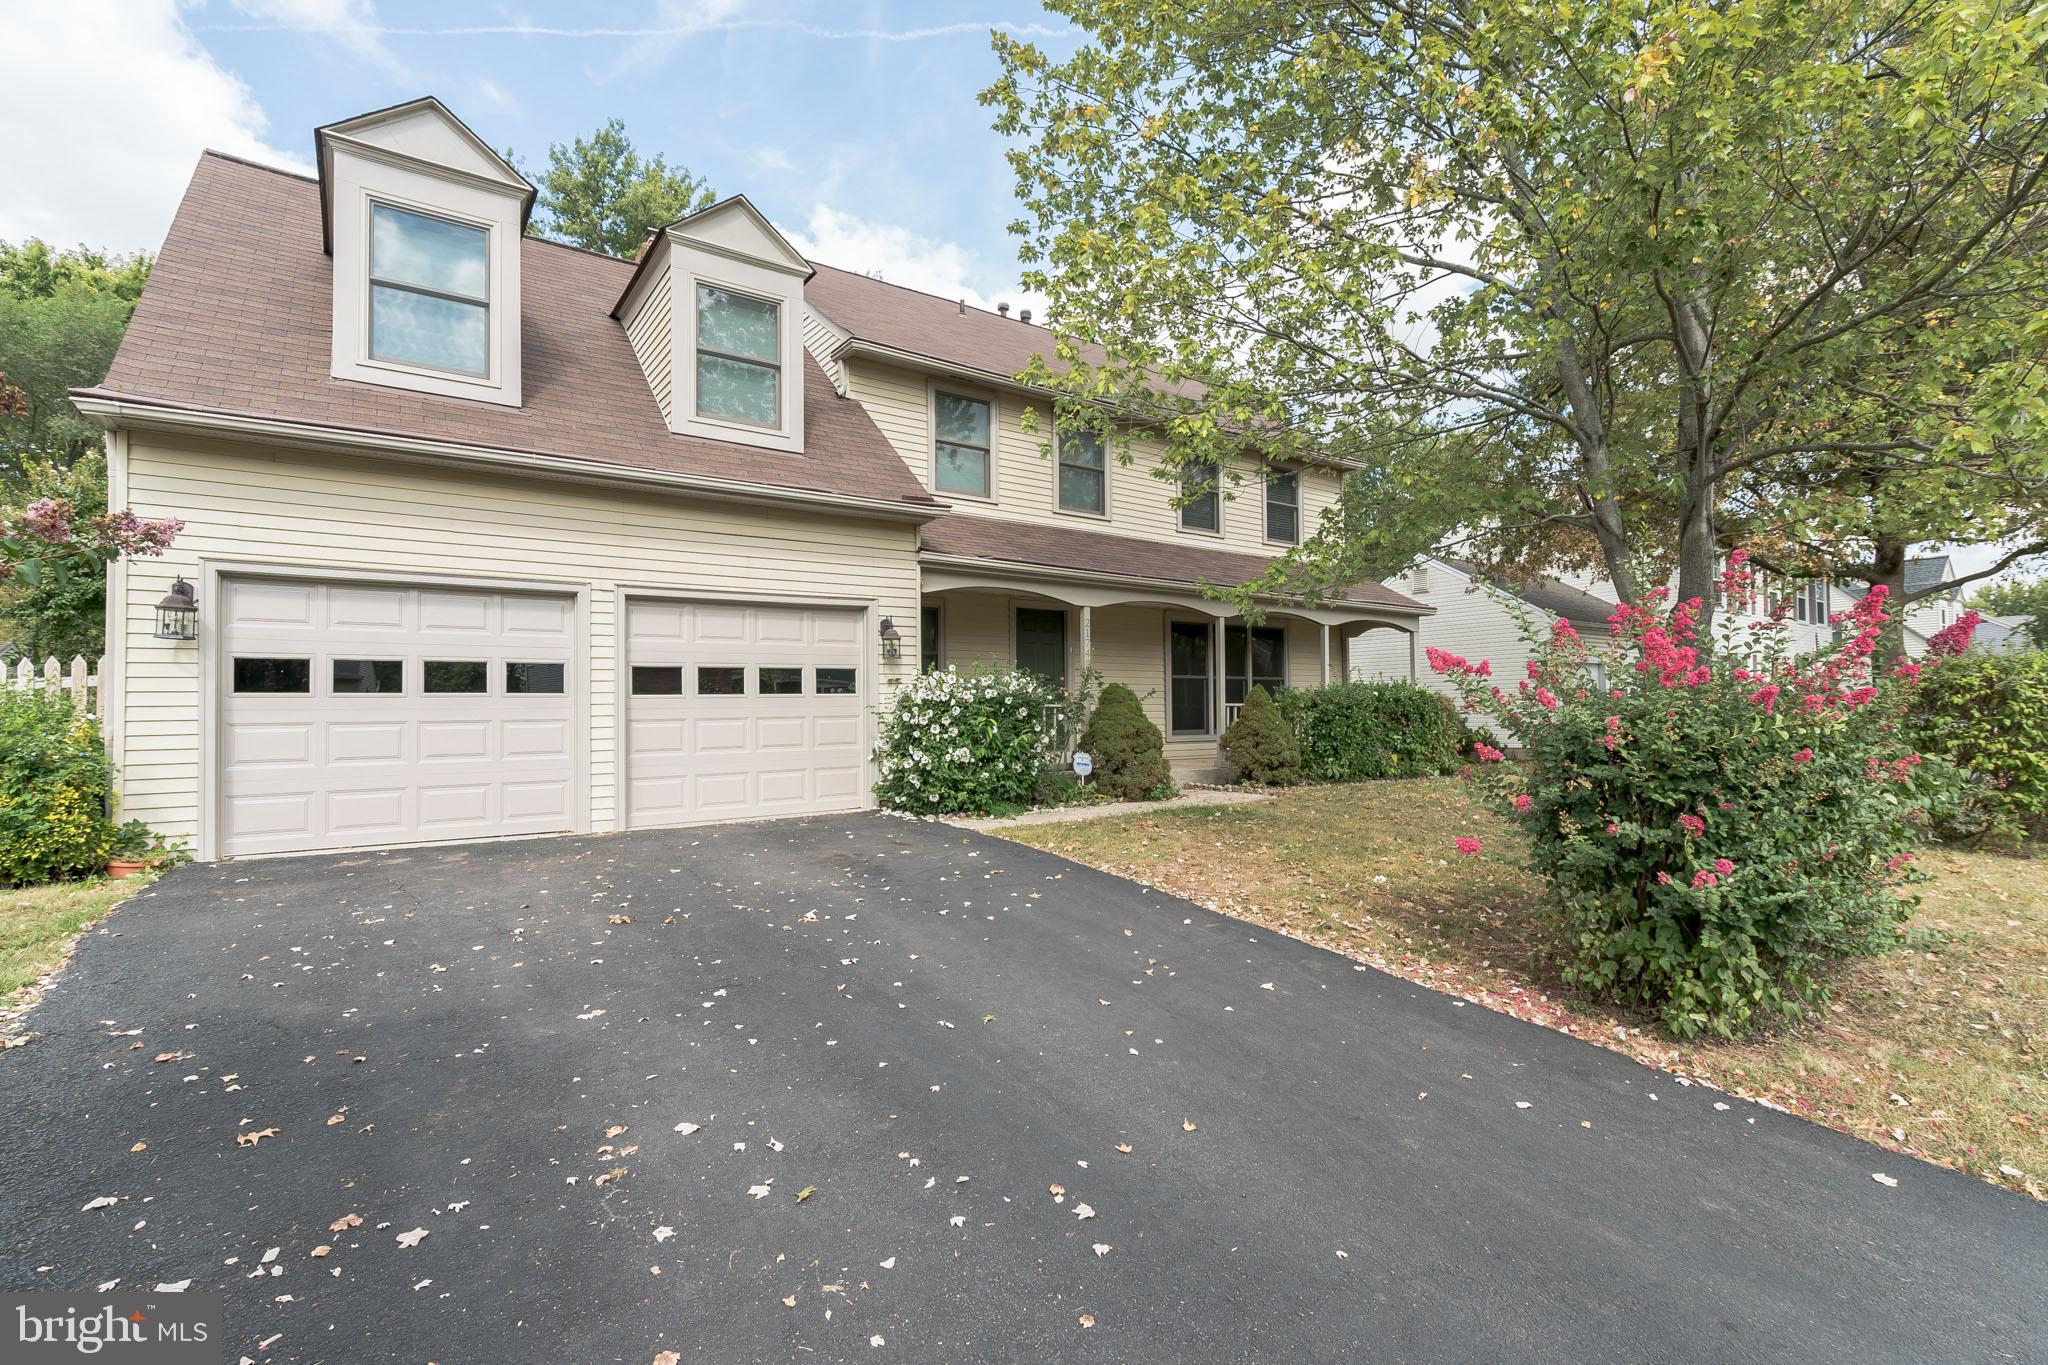 21749 ROLLING WOODS PLACE, STERLING, VA 20164